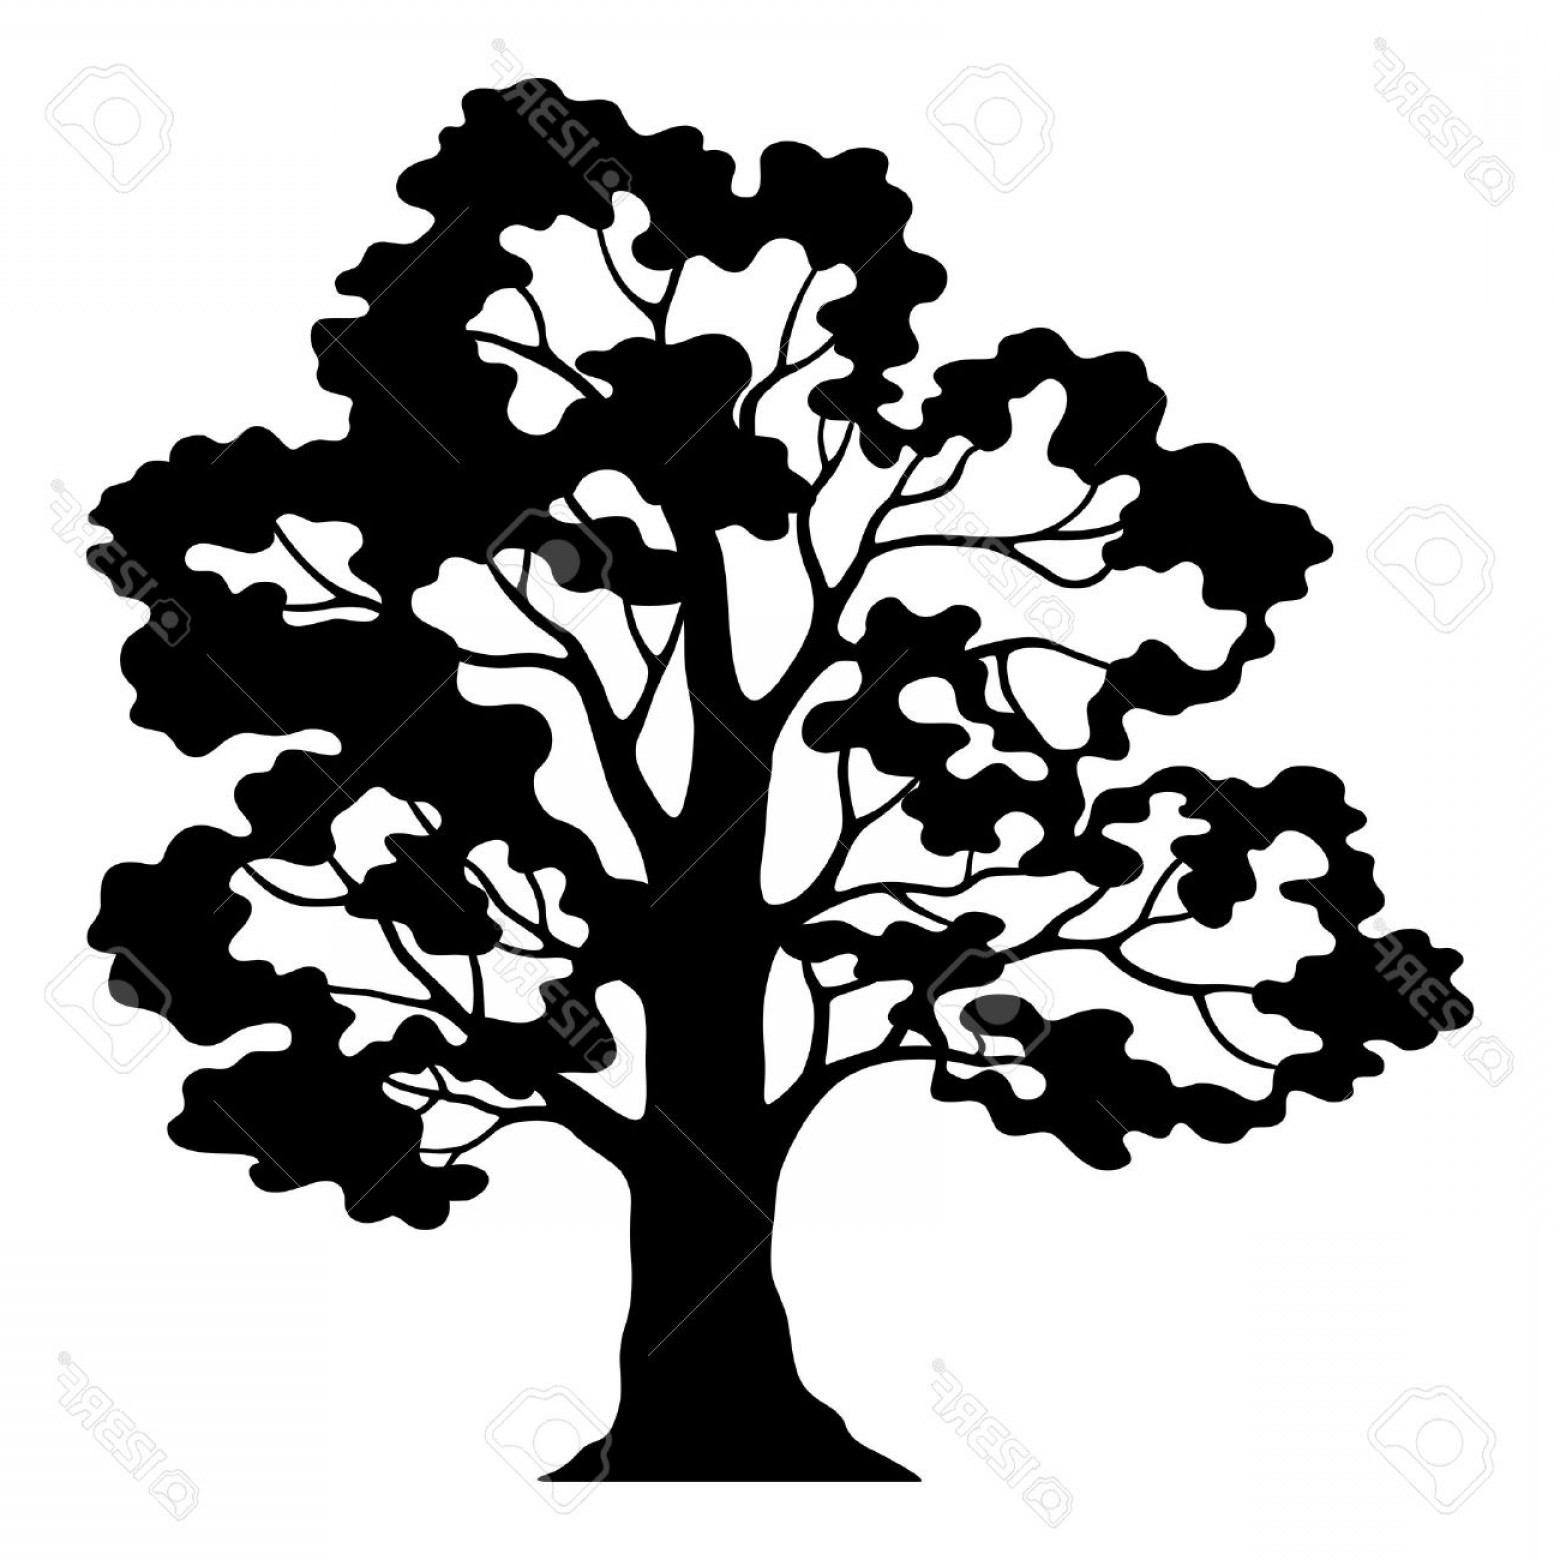 aspen tree silhouette at getdrawings com free for personal use rh getdrawings com Oak Tree with Swing Graphic oak tree graphic design